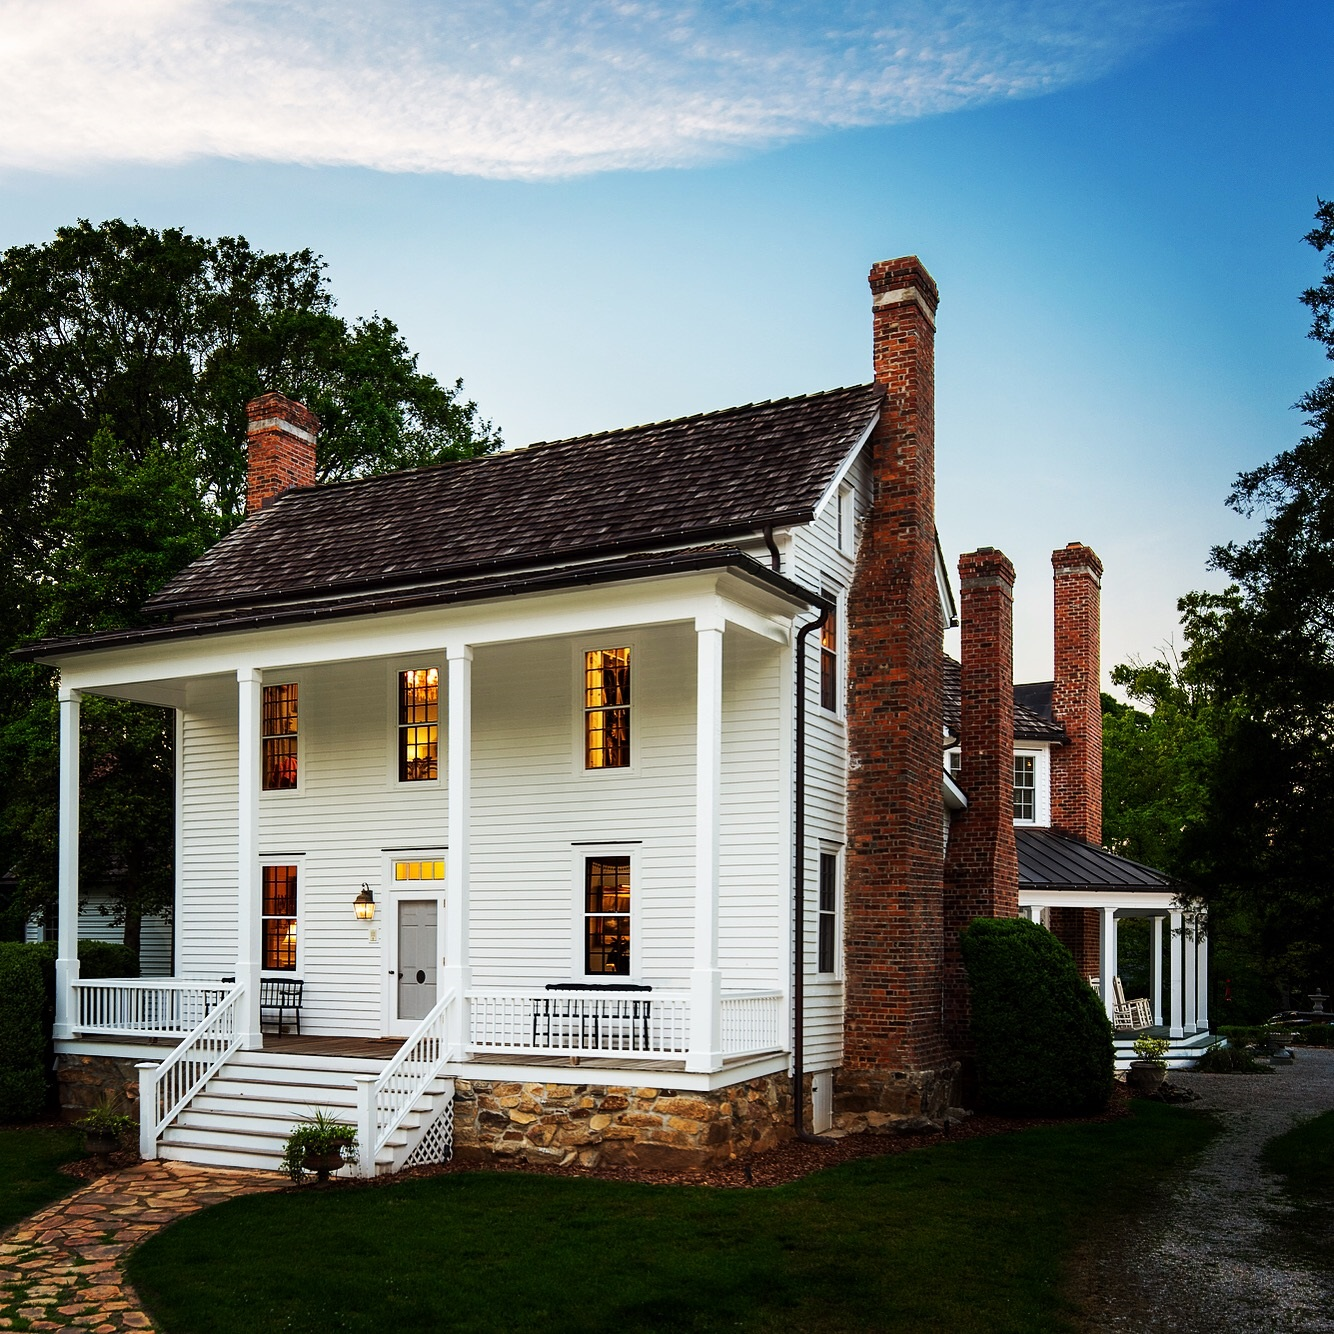 10 Historic Homes for Sale in Charlotte, North Carolina